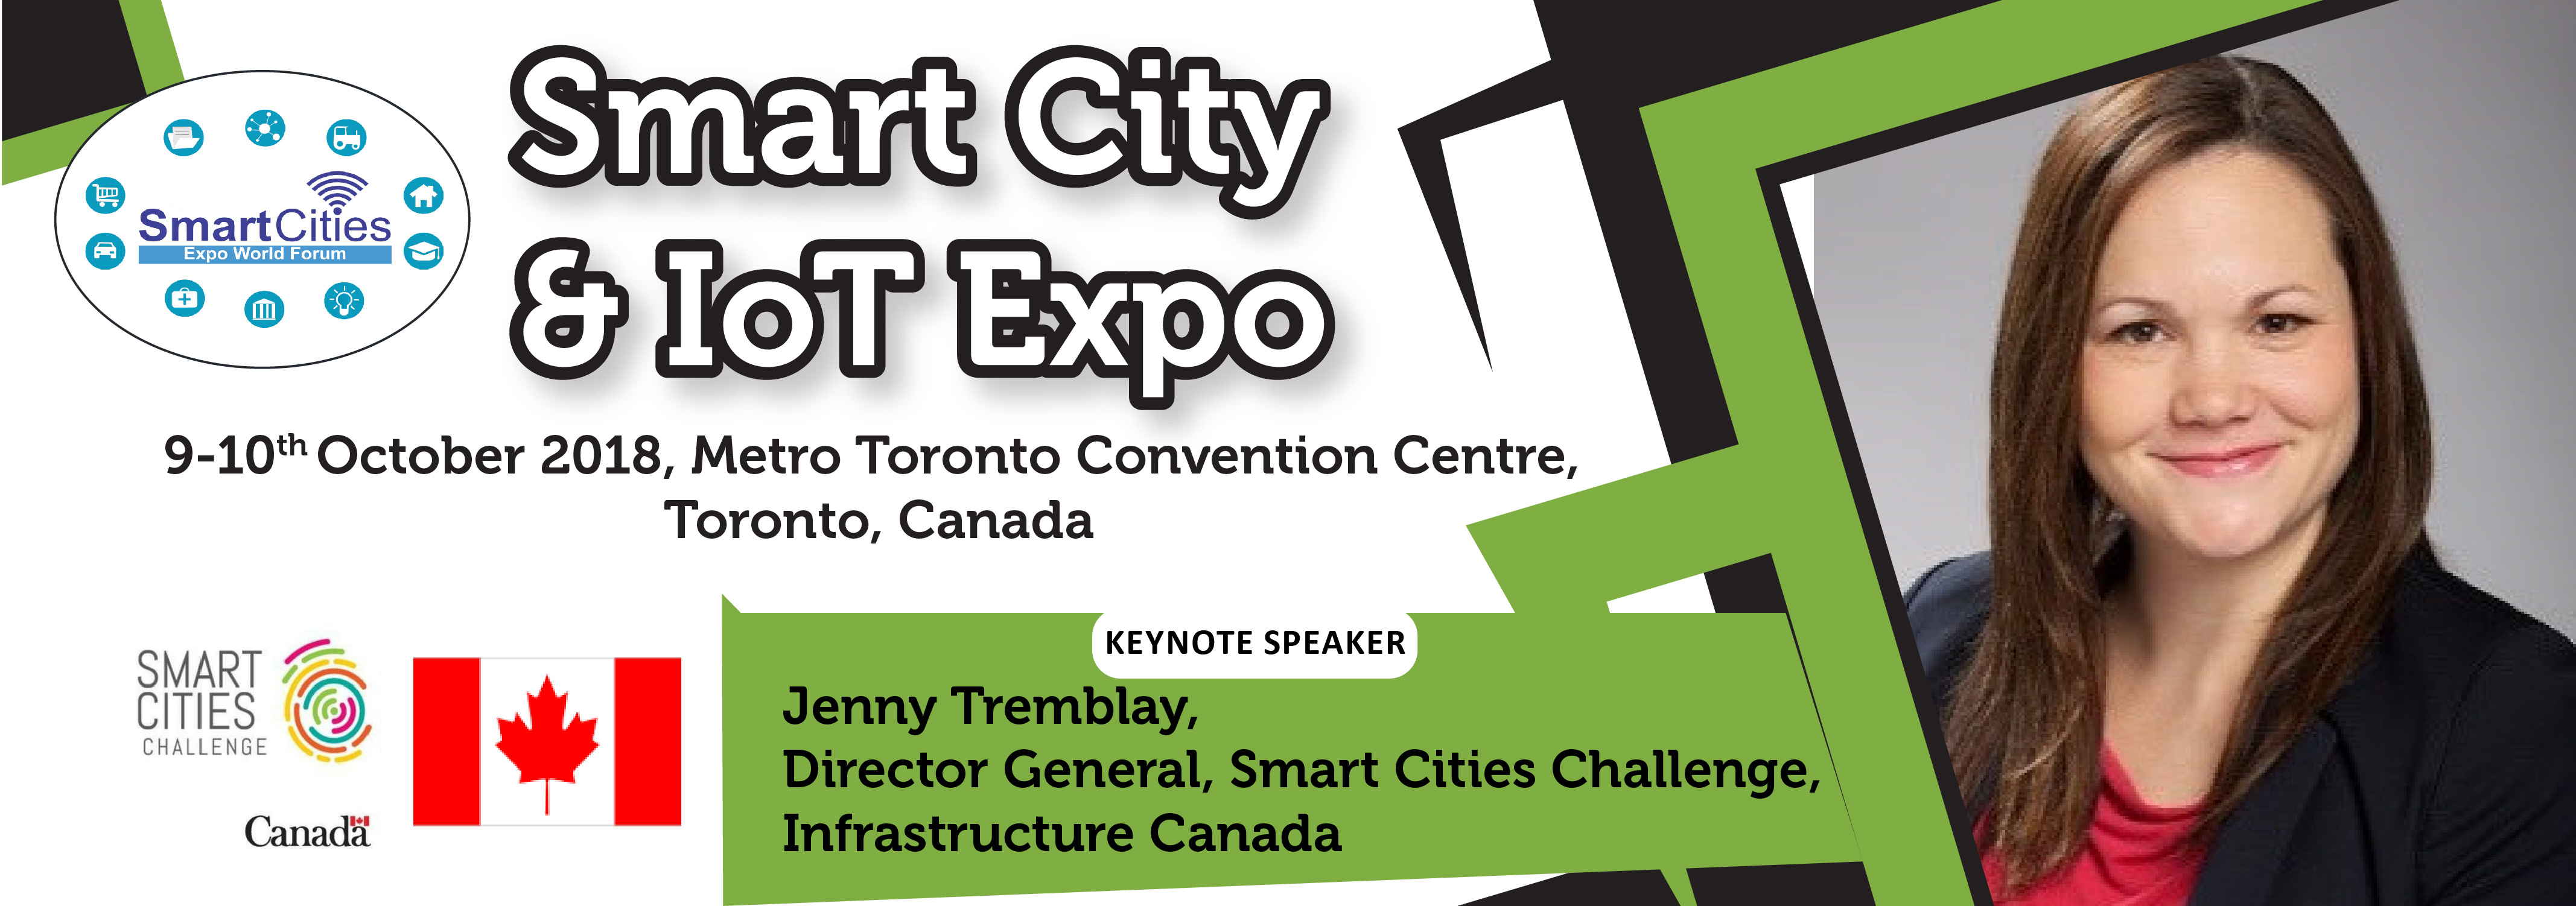 Smart Cities Expo World Forum is pleased to announce the presence of Jenny Tremblay, Director General of Smart Cities Challenge, Infrastructure Canada at Smart City & IoT Expo 9-10 Oct. 2018, Metro Toronto Convention Center, Toronto, Canada.